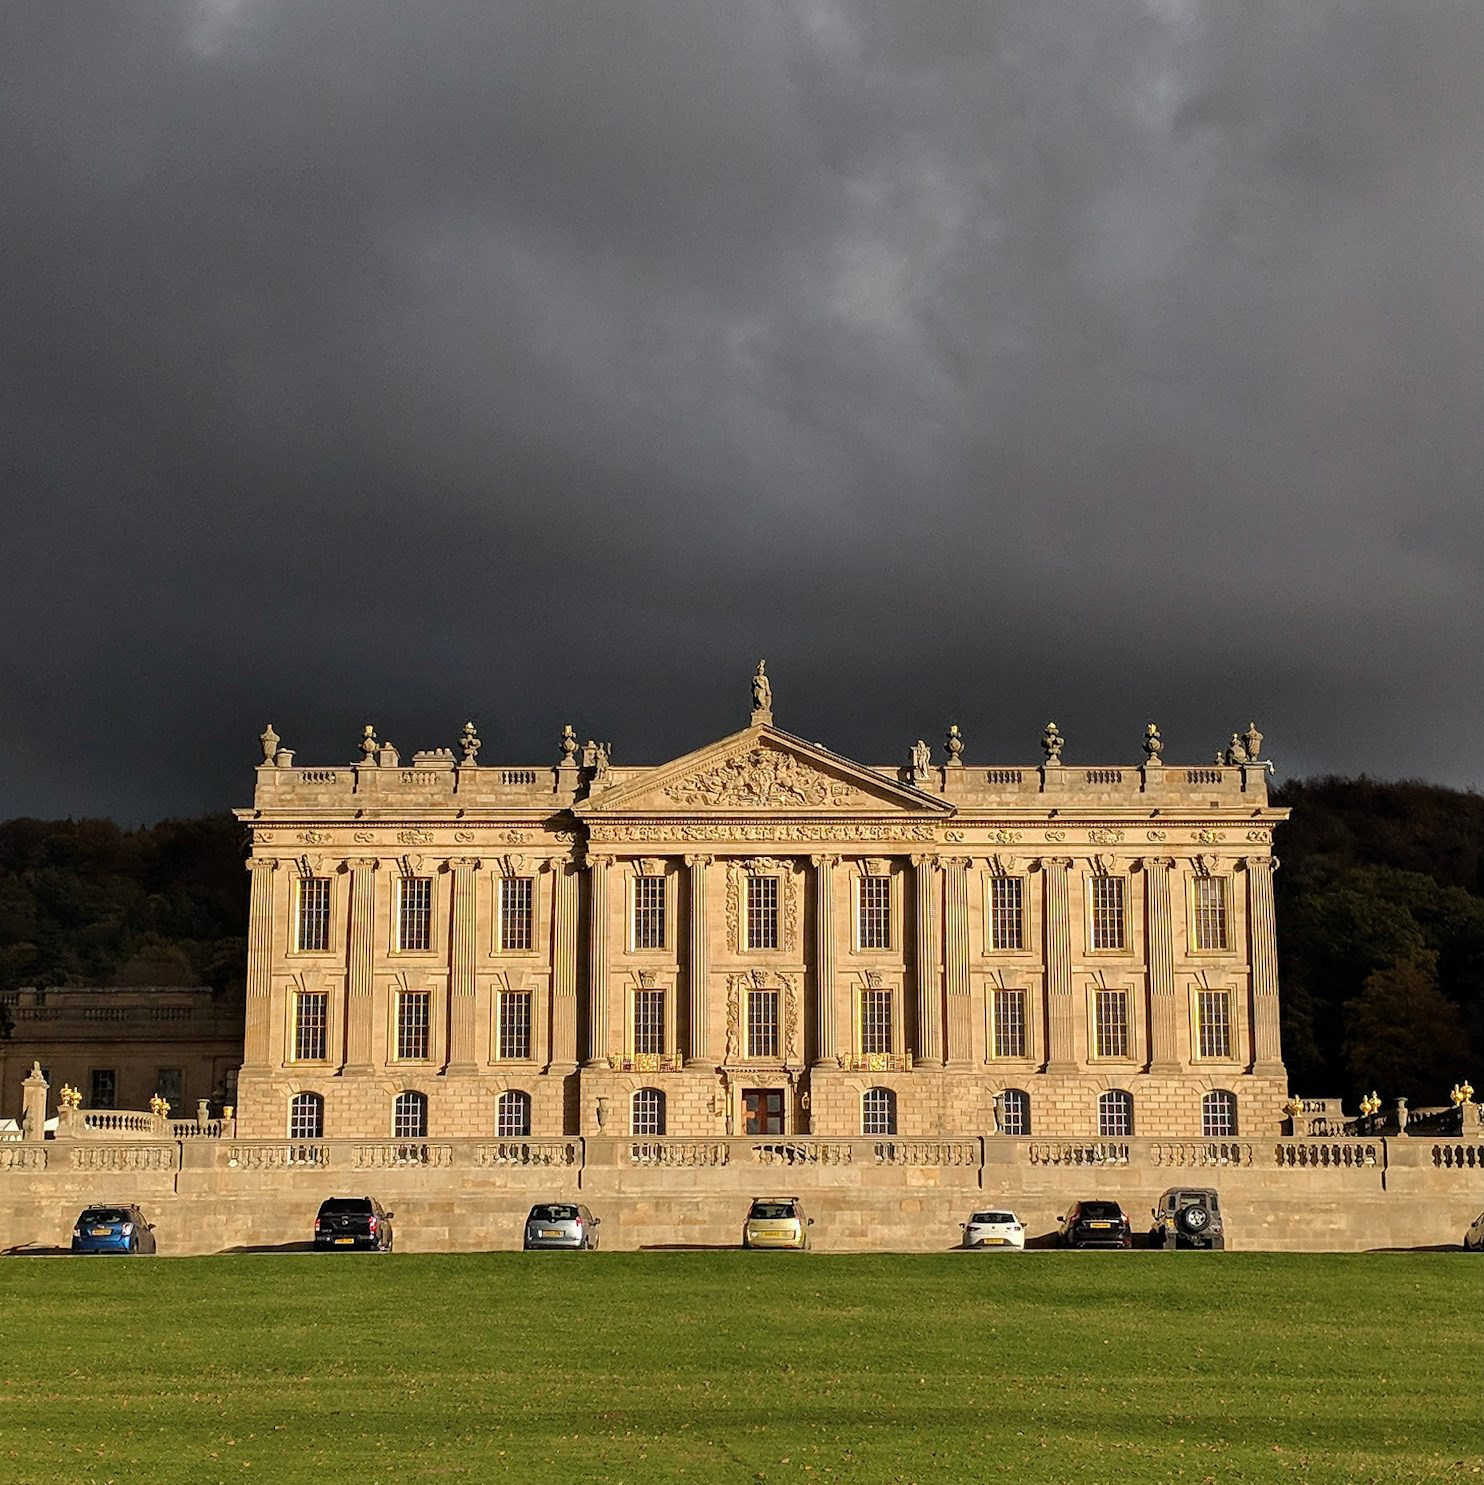 Chatsworth House against a grey stormy backdrop.